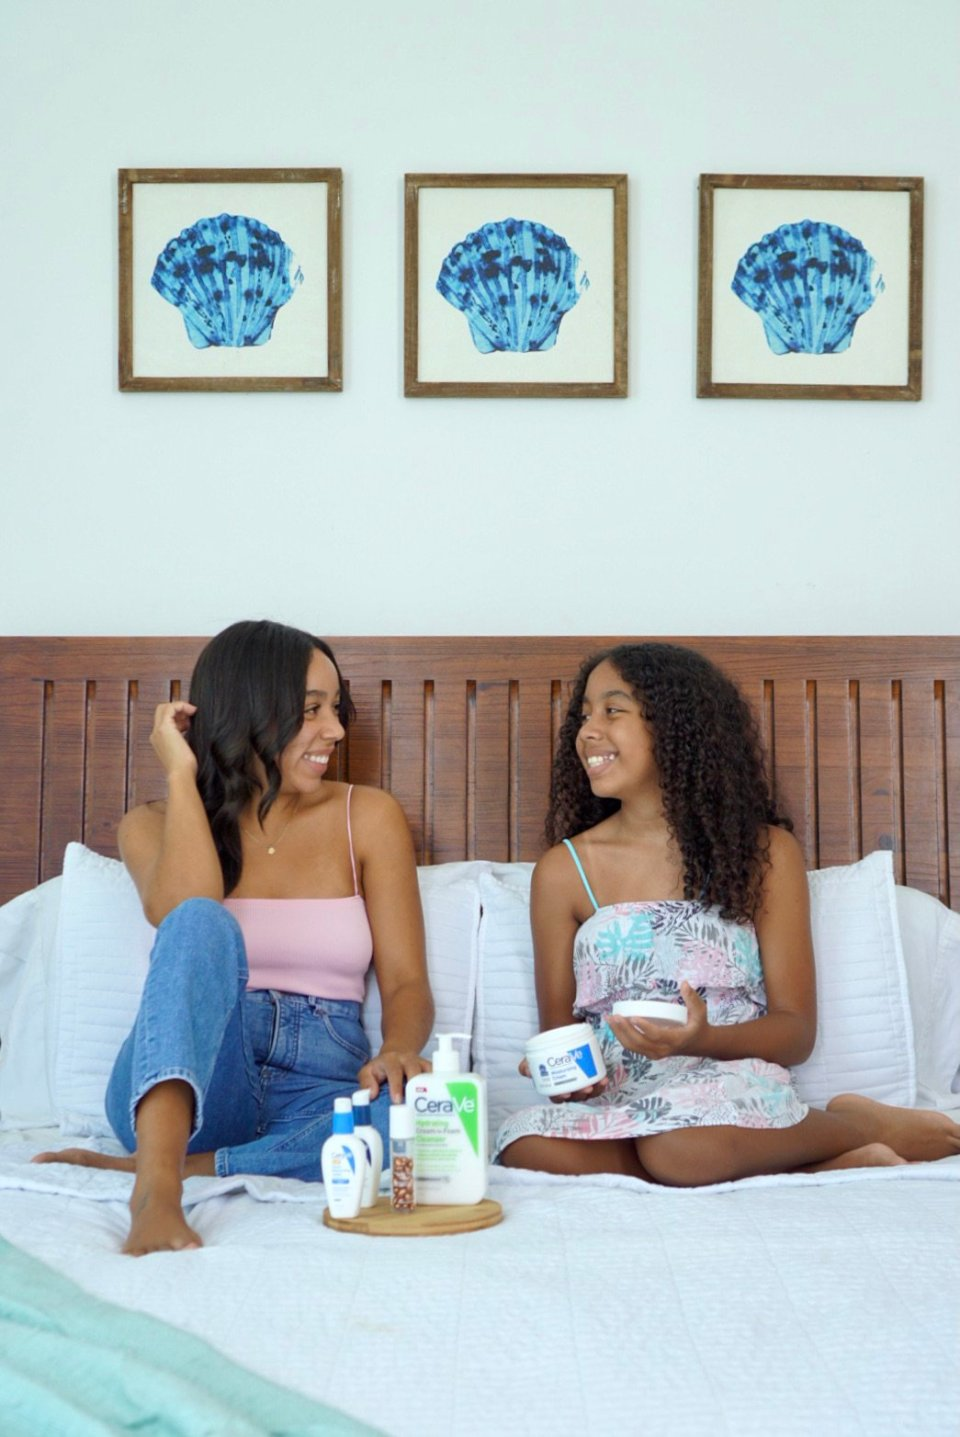 Beauty: My Daughter and My Skincare Favorites